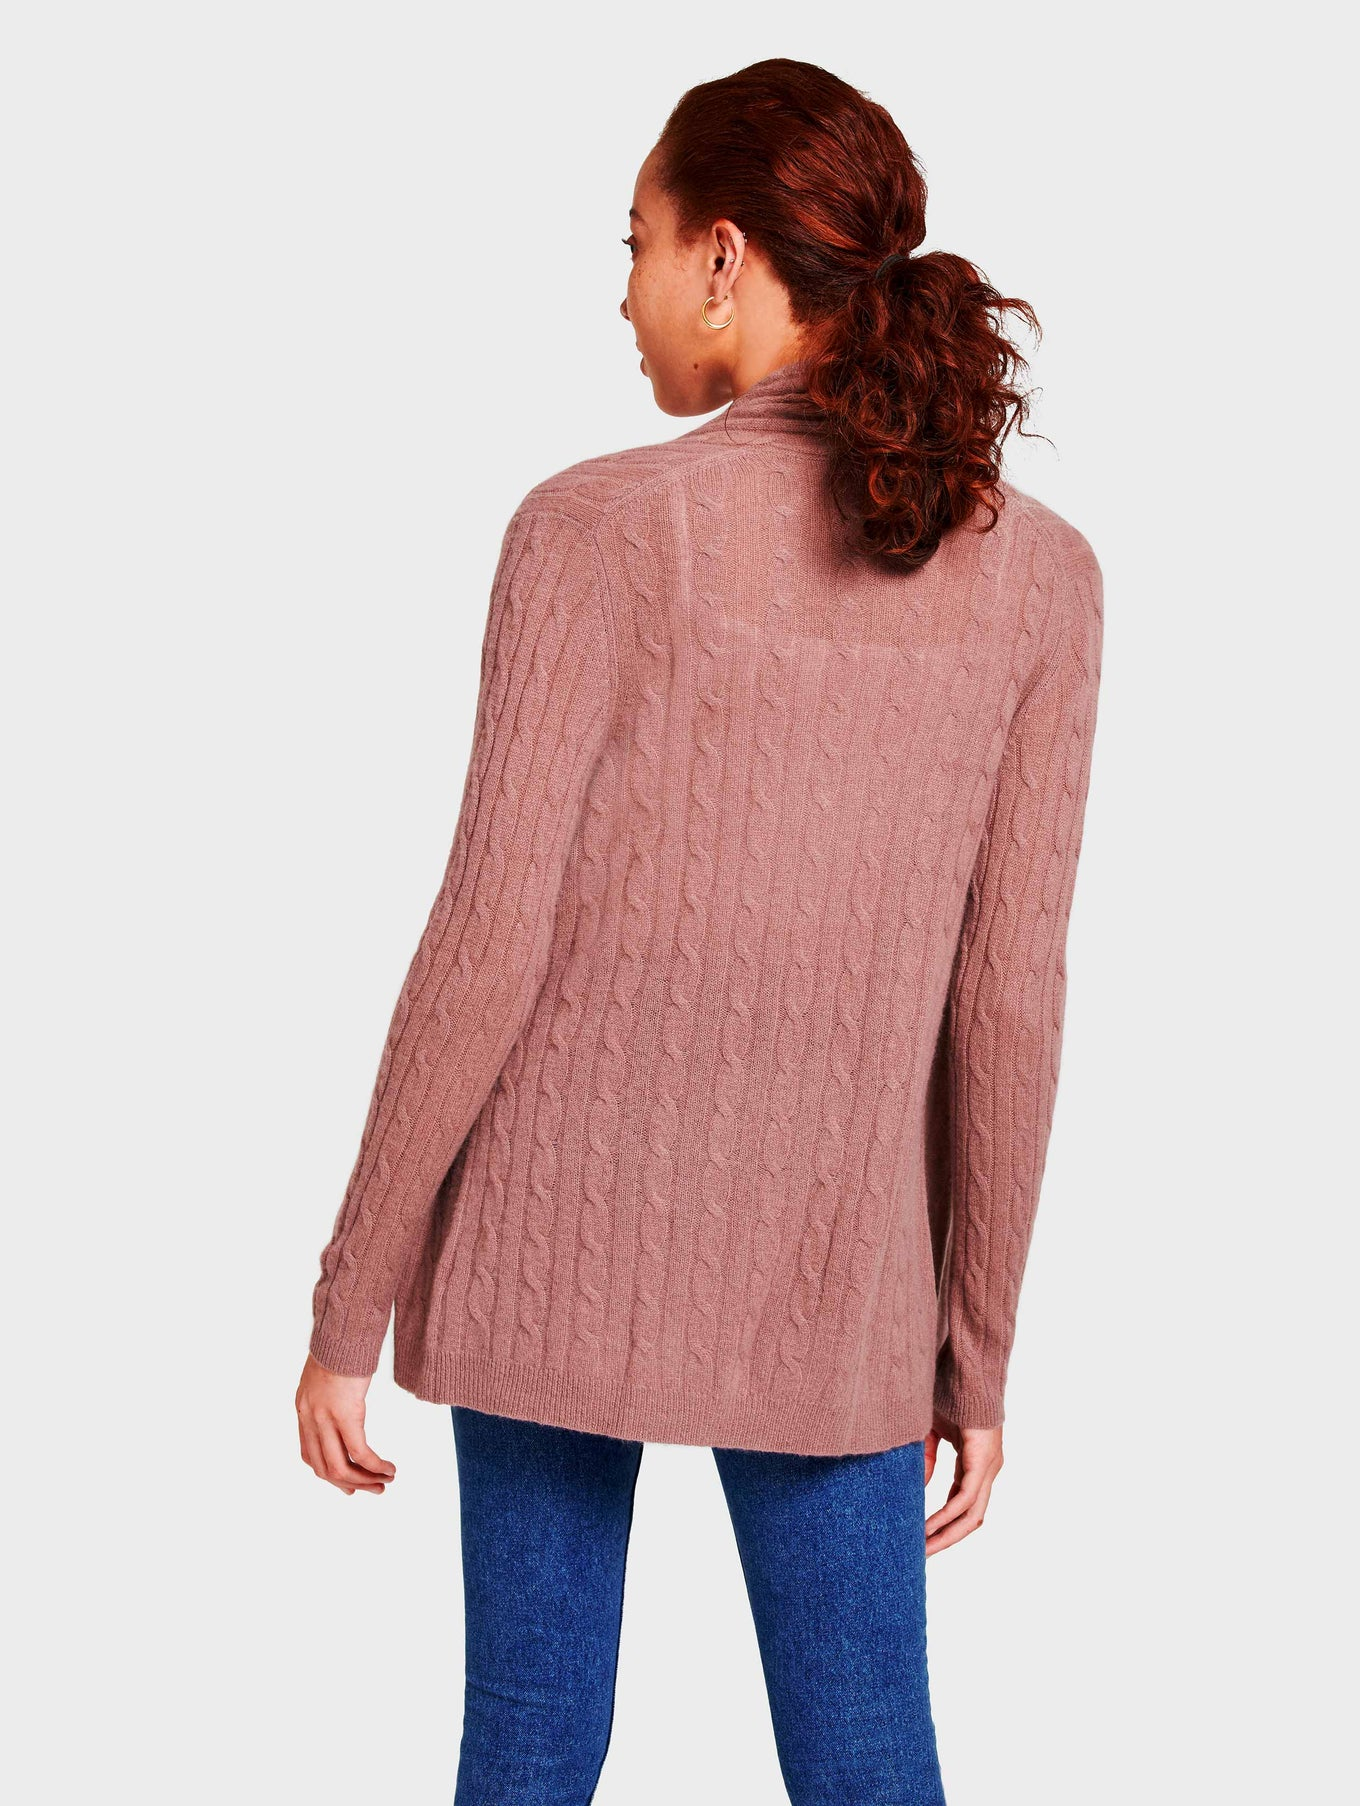 Cashmere Cable Cardigan - Smoky Quartz Heather - Image 3